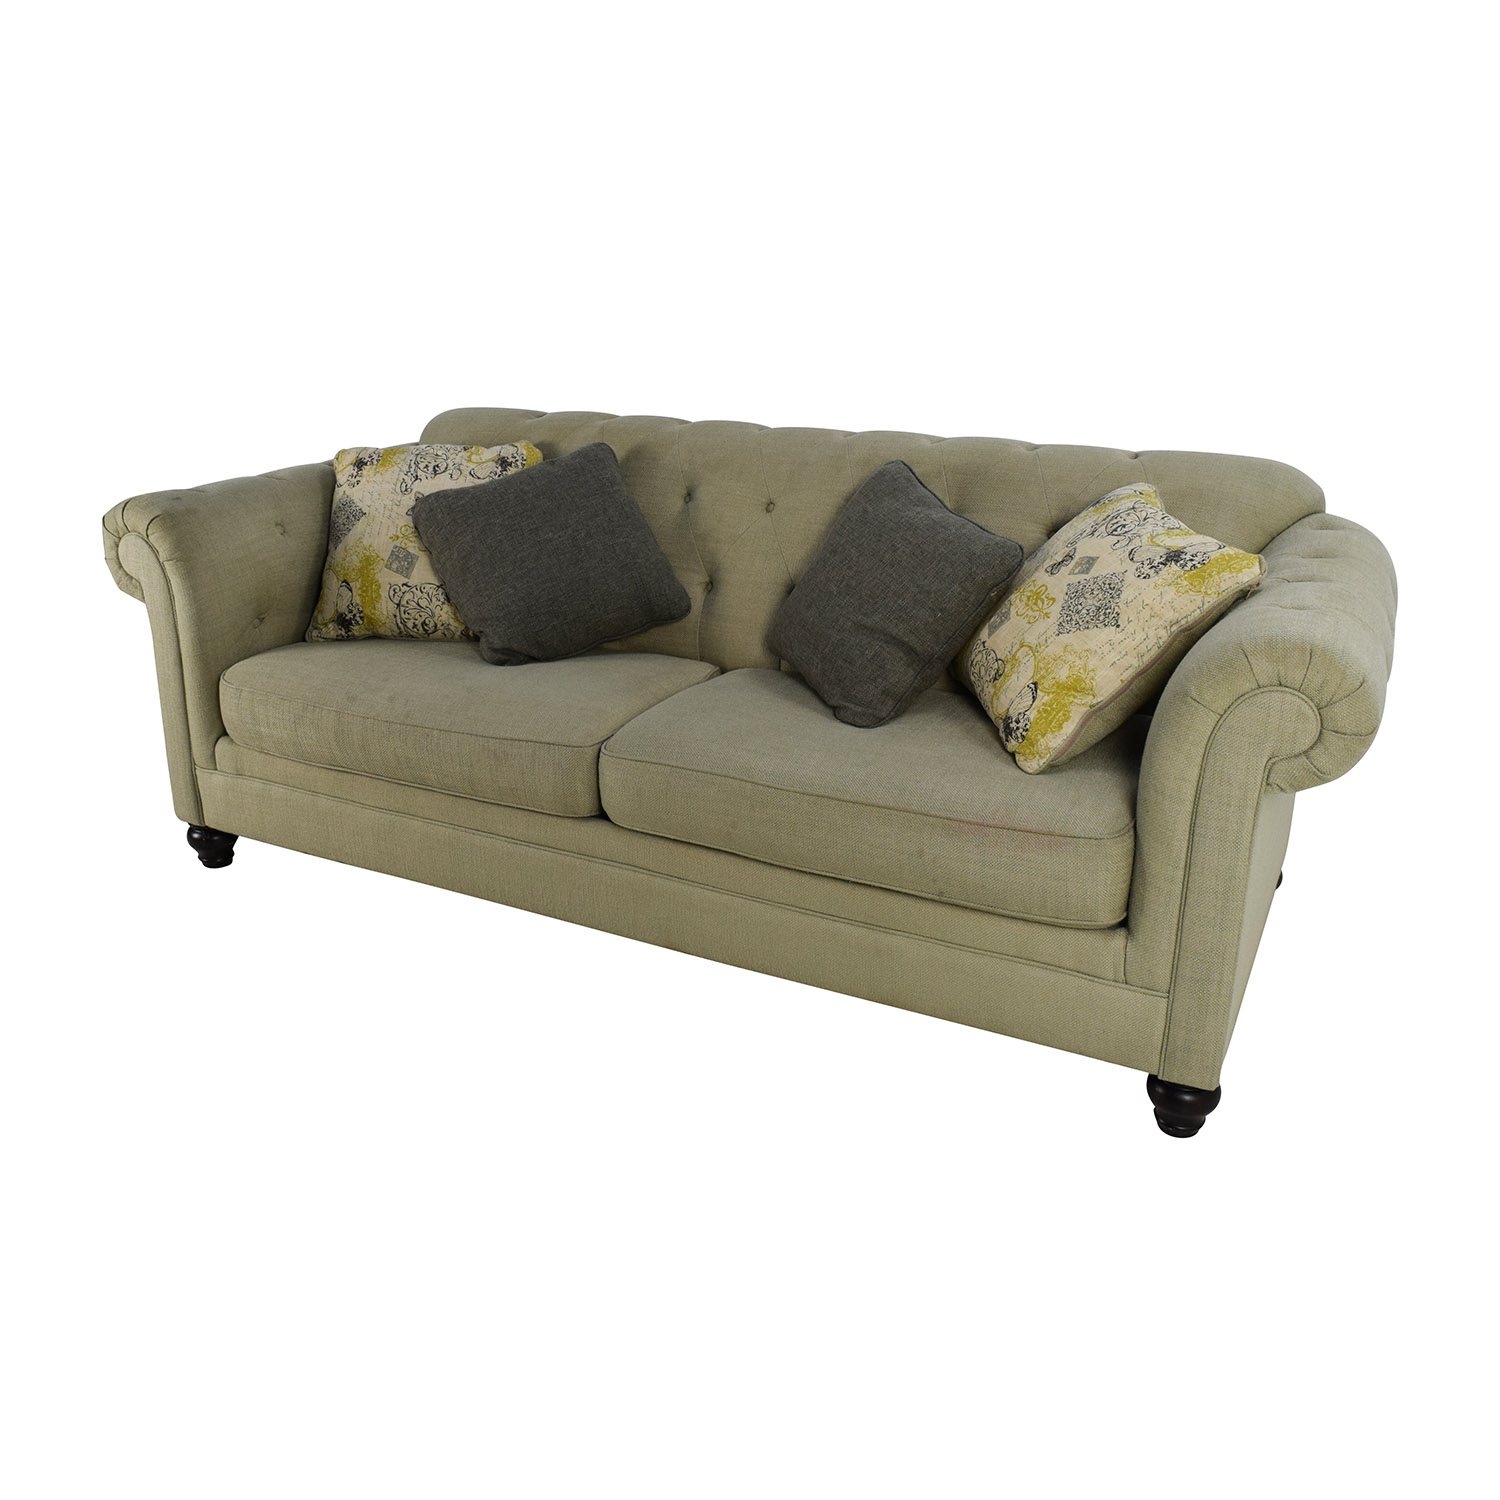 Ashley Sofas Prices: Ashley Furniture Ashley Furniture Hindell Park